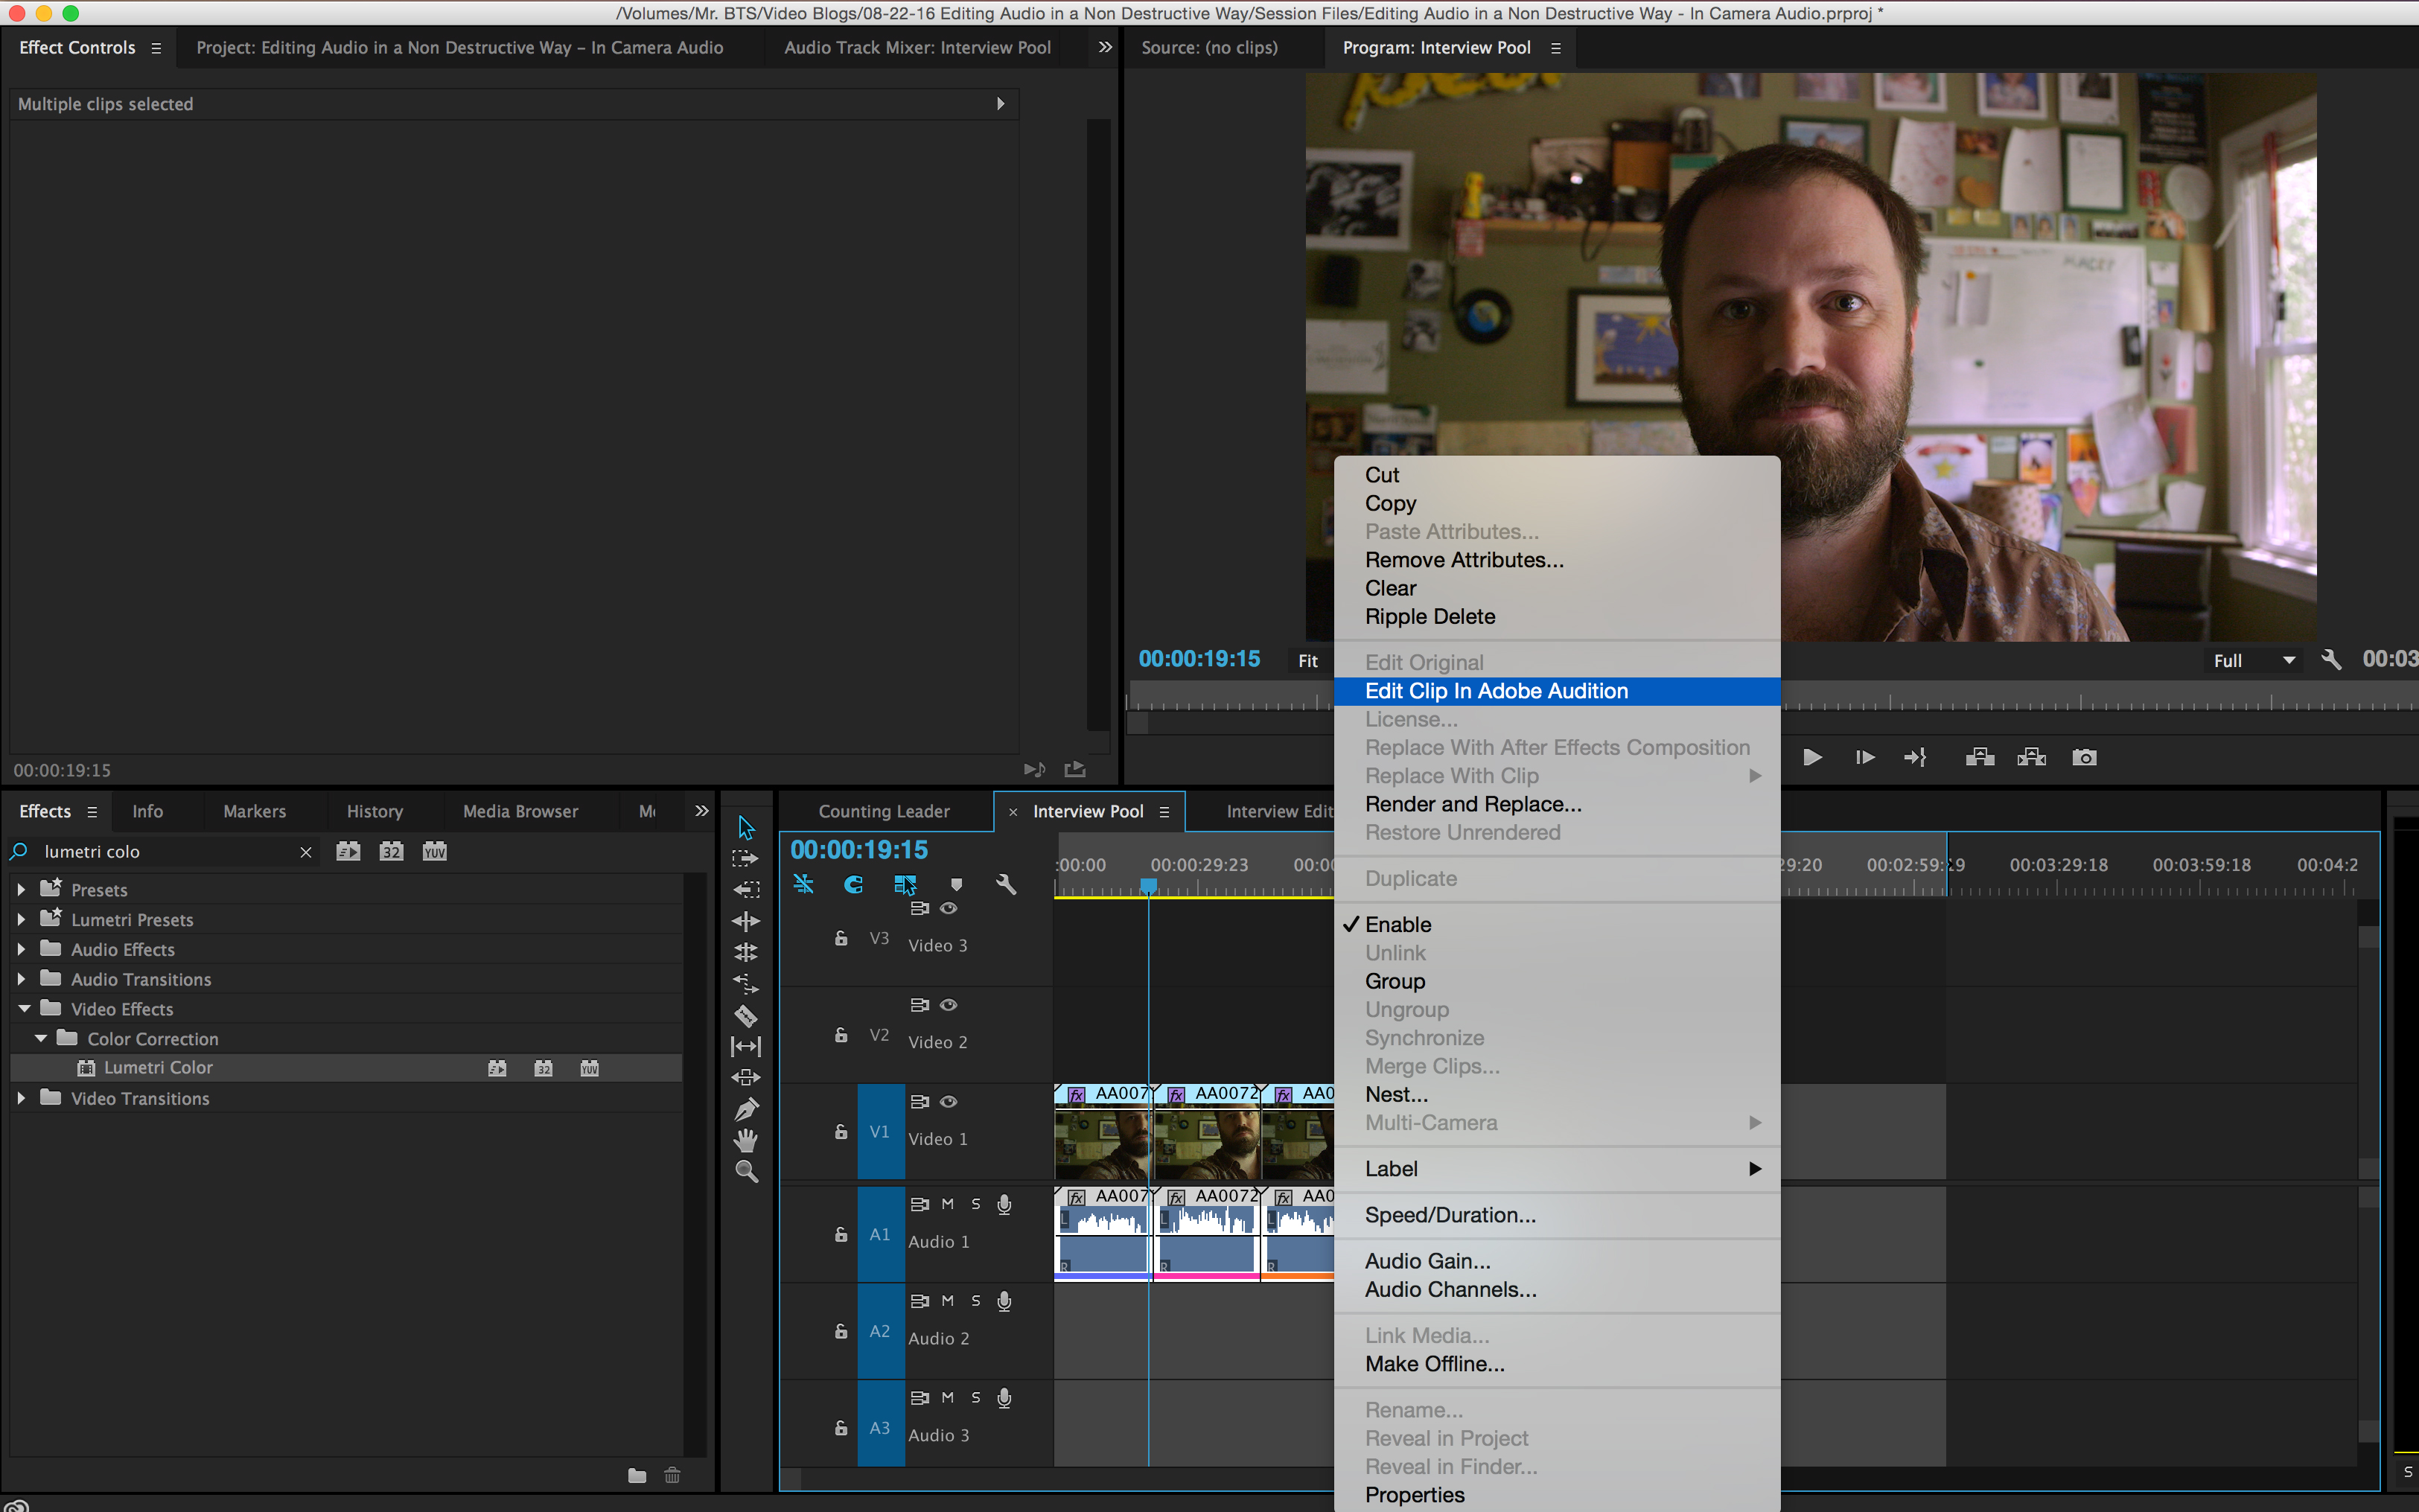 How to Simultaneously Edit Multiple Internal Camera Audio Files: Edit Clip in Adobe Audition